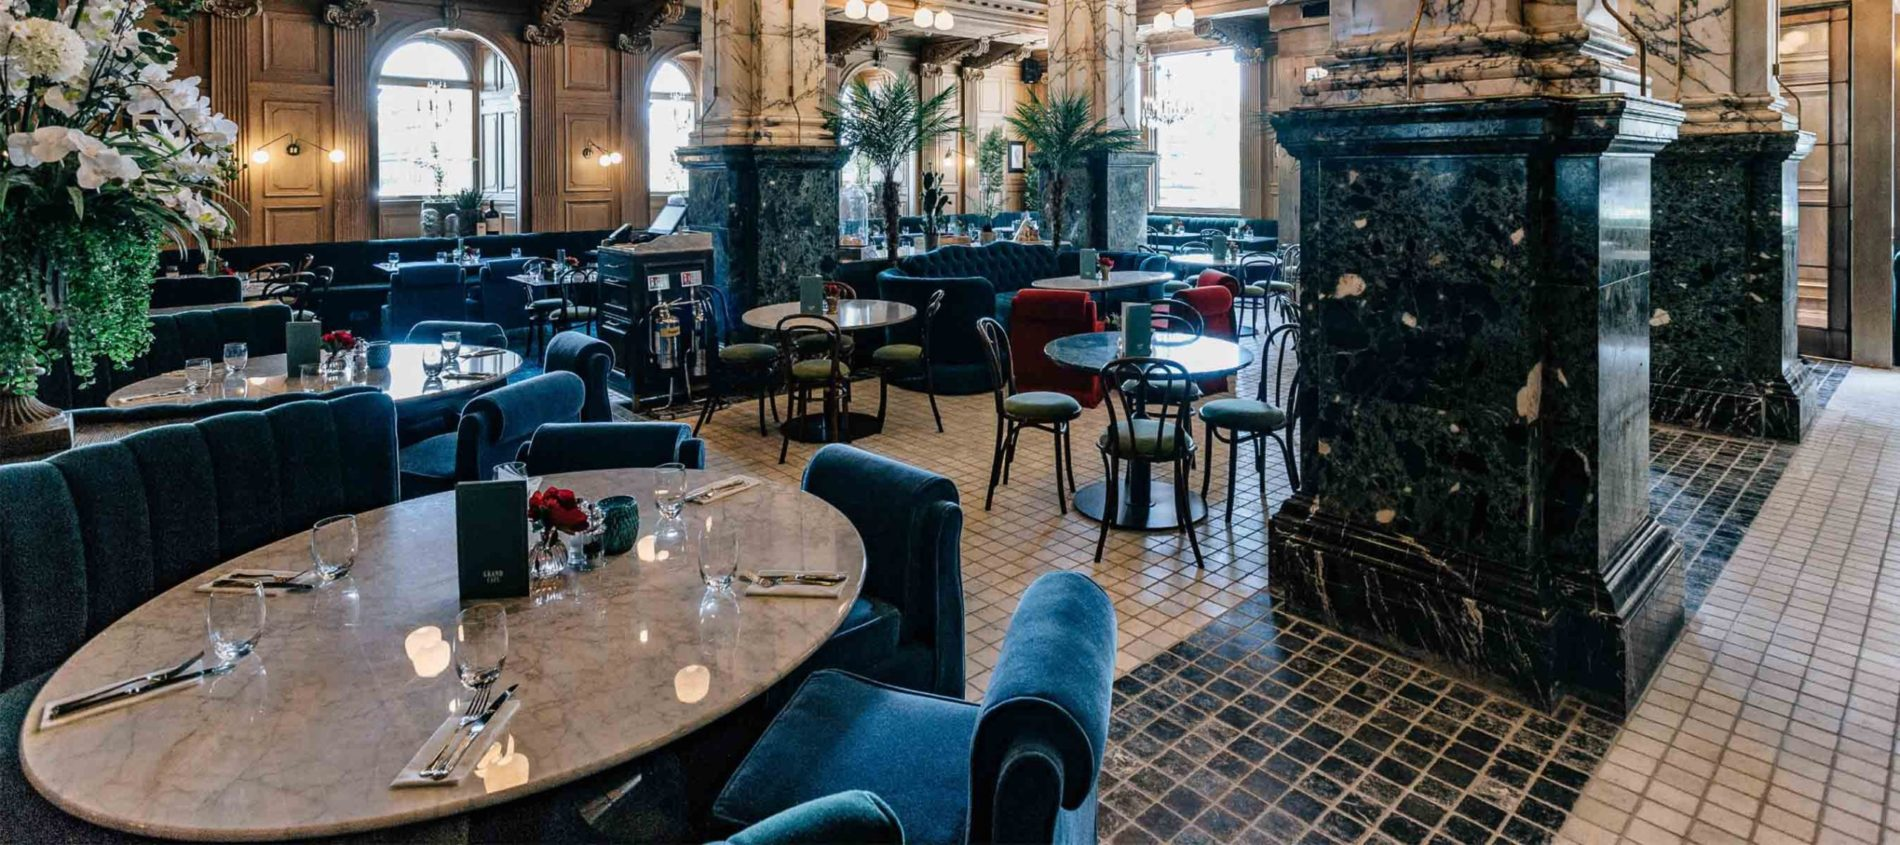 French cafe style tiled floors laid tables